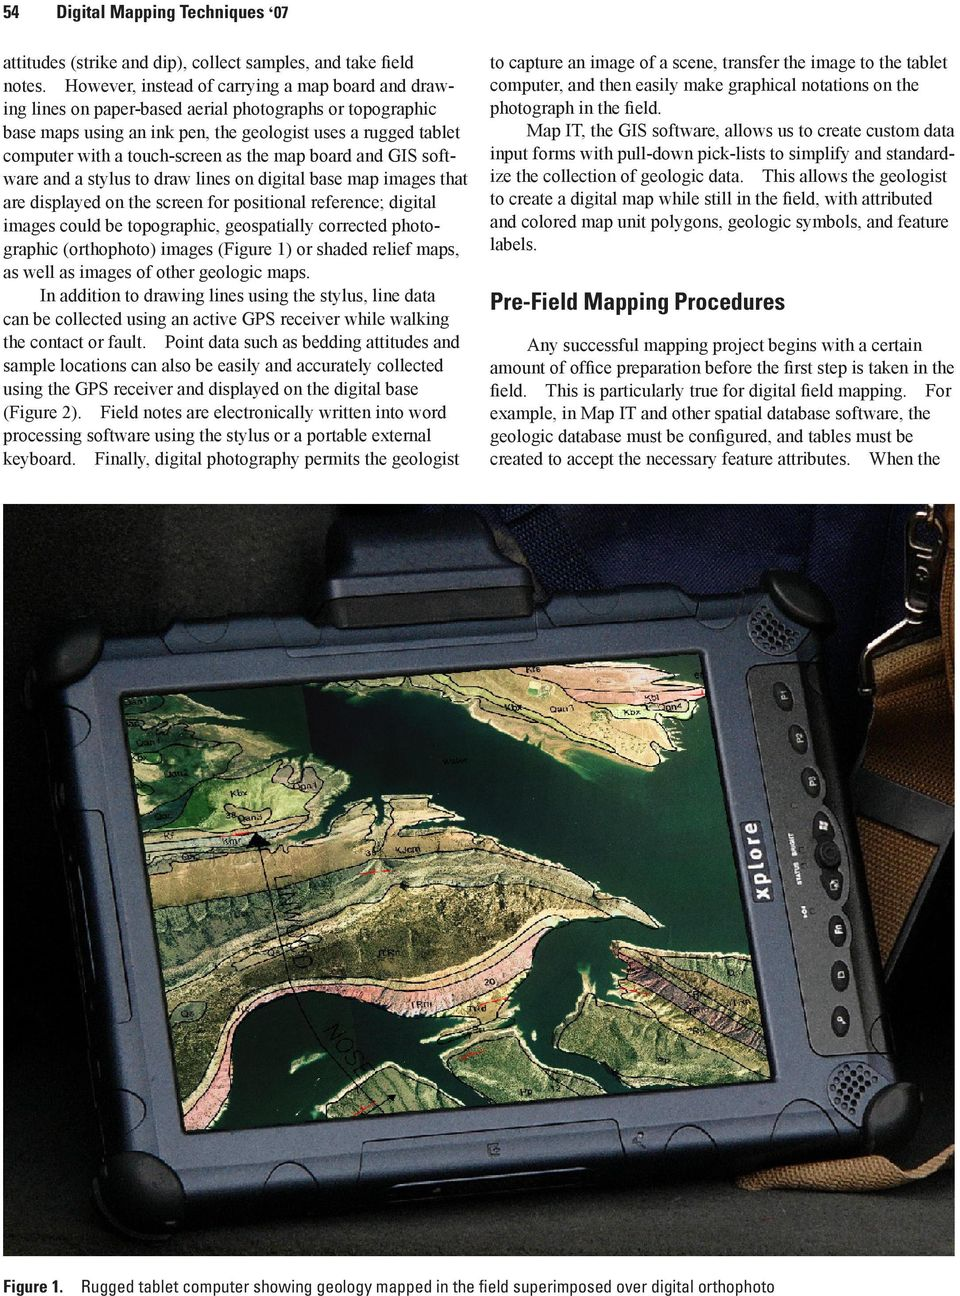 as the map board and GIS software and a stylus to draw lines on digital base map images that are displayed on the screen for positional reference; digital images could be topographic, geospatially